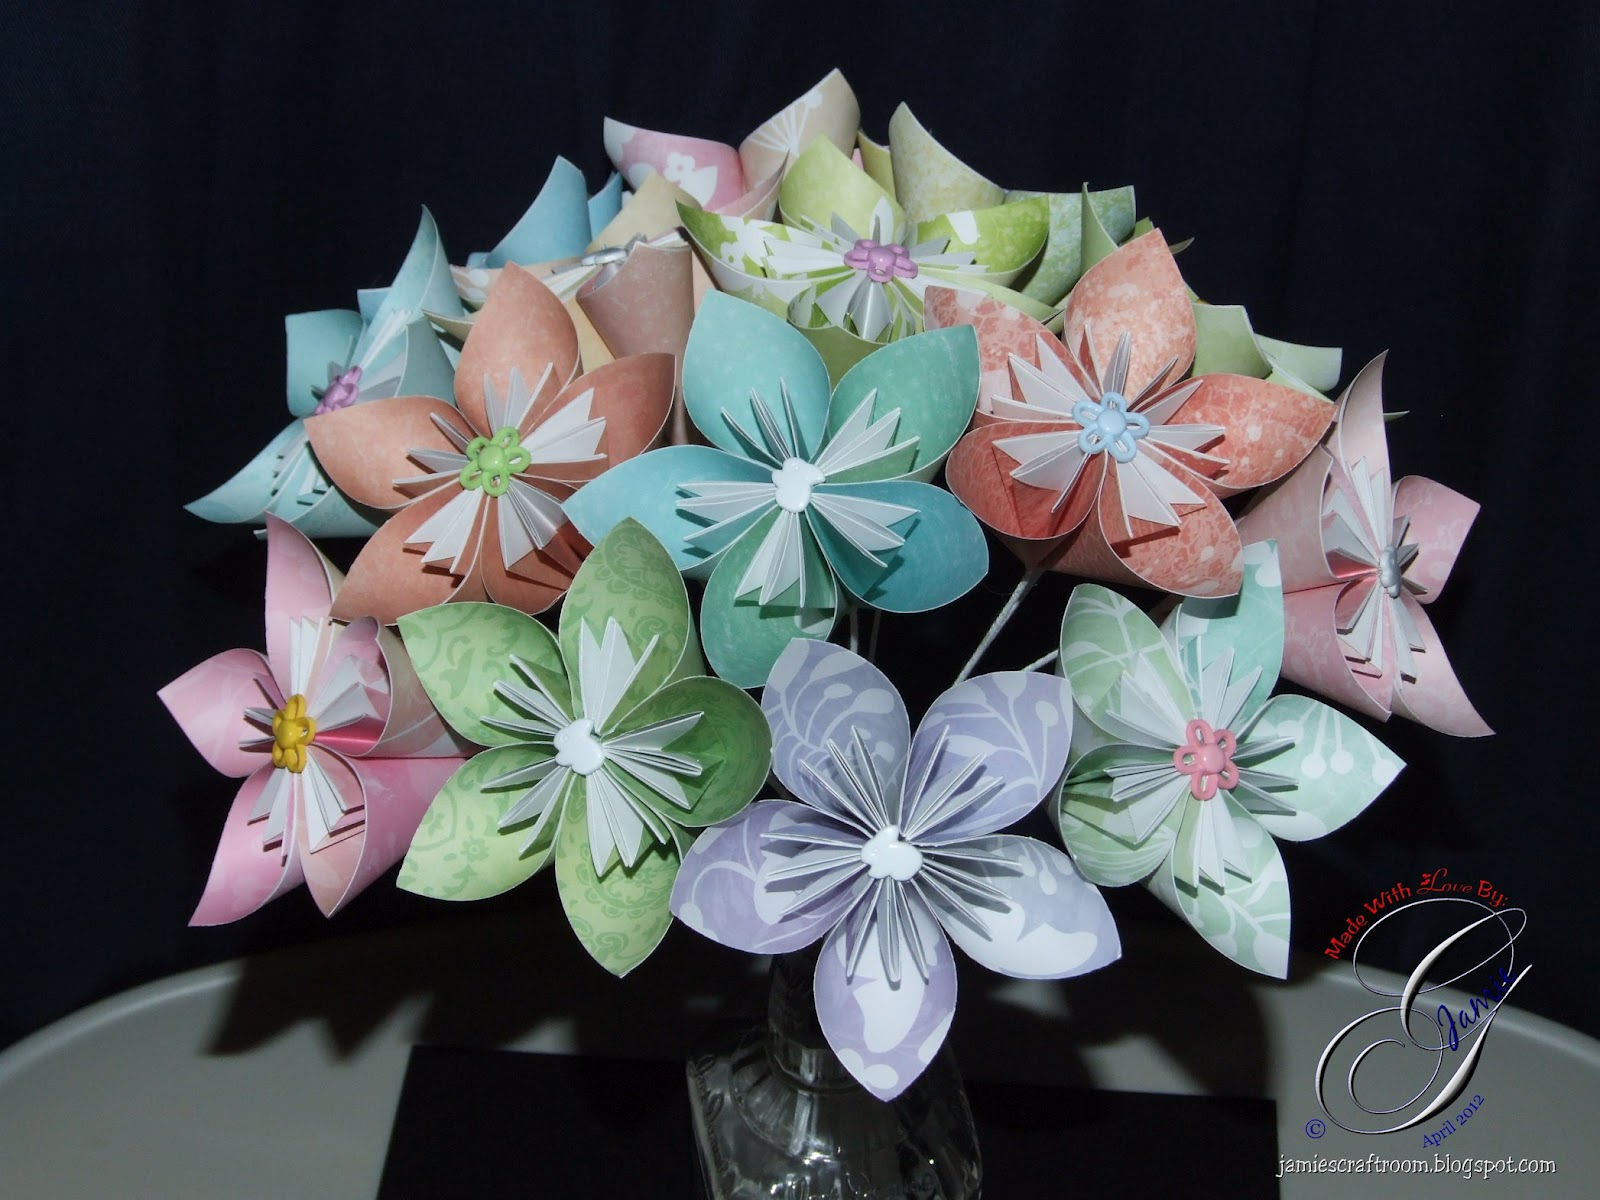 Jamies craft room kusudama flower bouquet assembly i will also be making the bouquet tighter and adding some tulle as filler after the wedding in june i will be sure to post pictures and directions on how izmirmasajfo